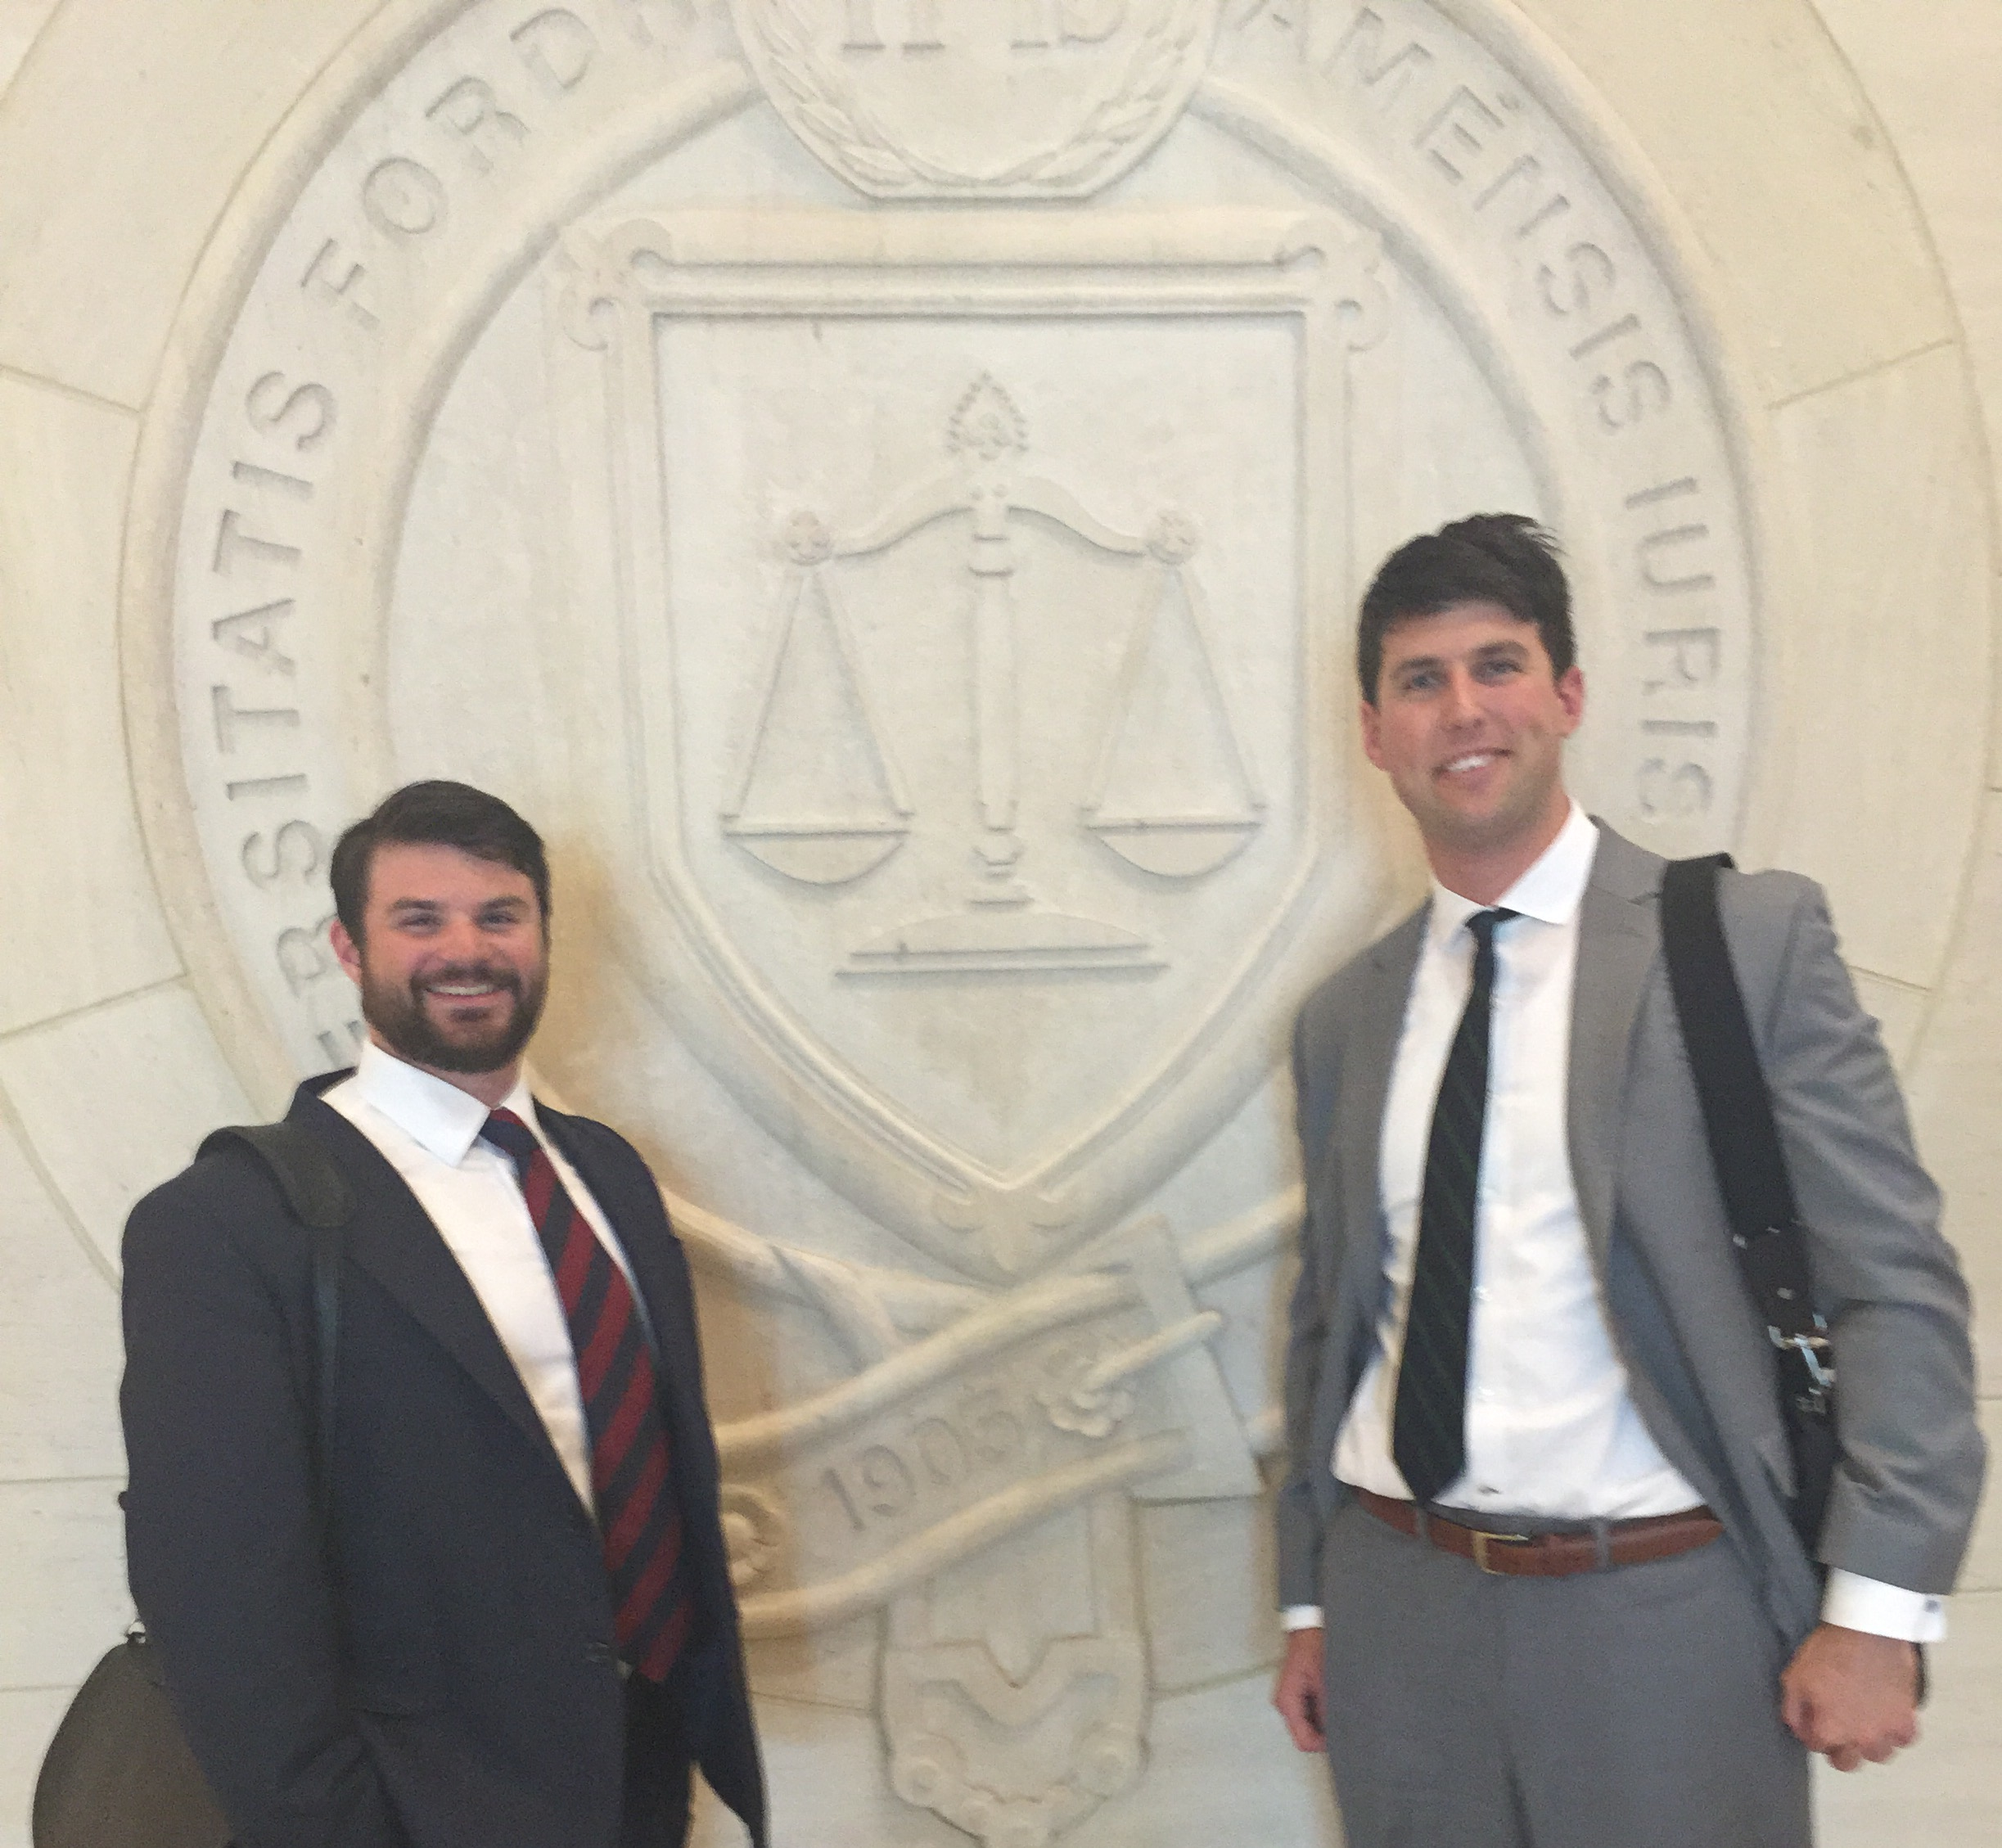 UK Law Students Compete in Moot Court Competition | UK